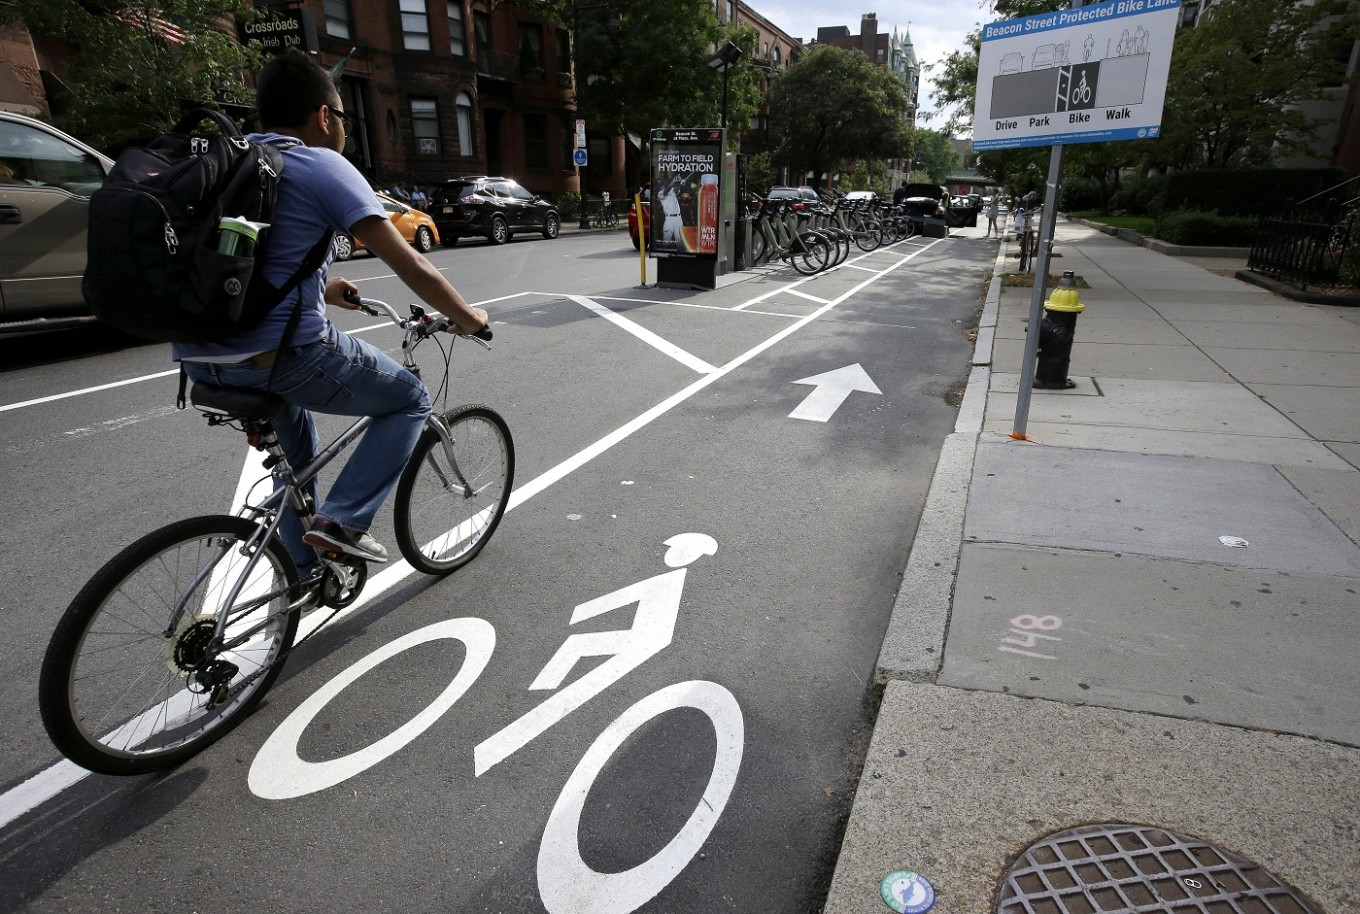 How to write an essay on making more bike lanes?